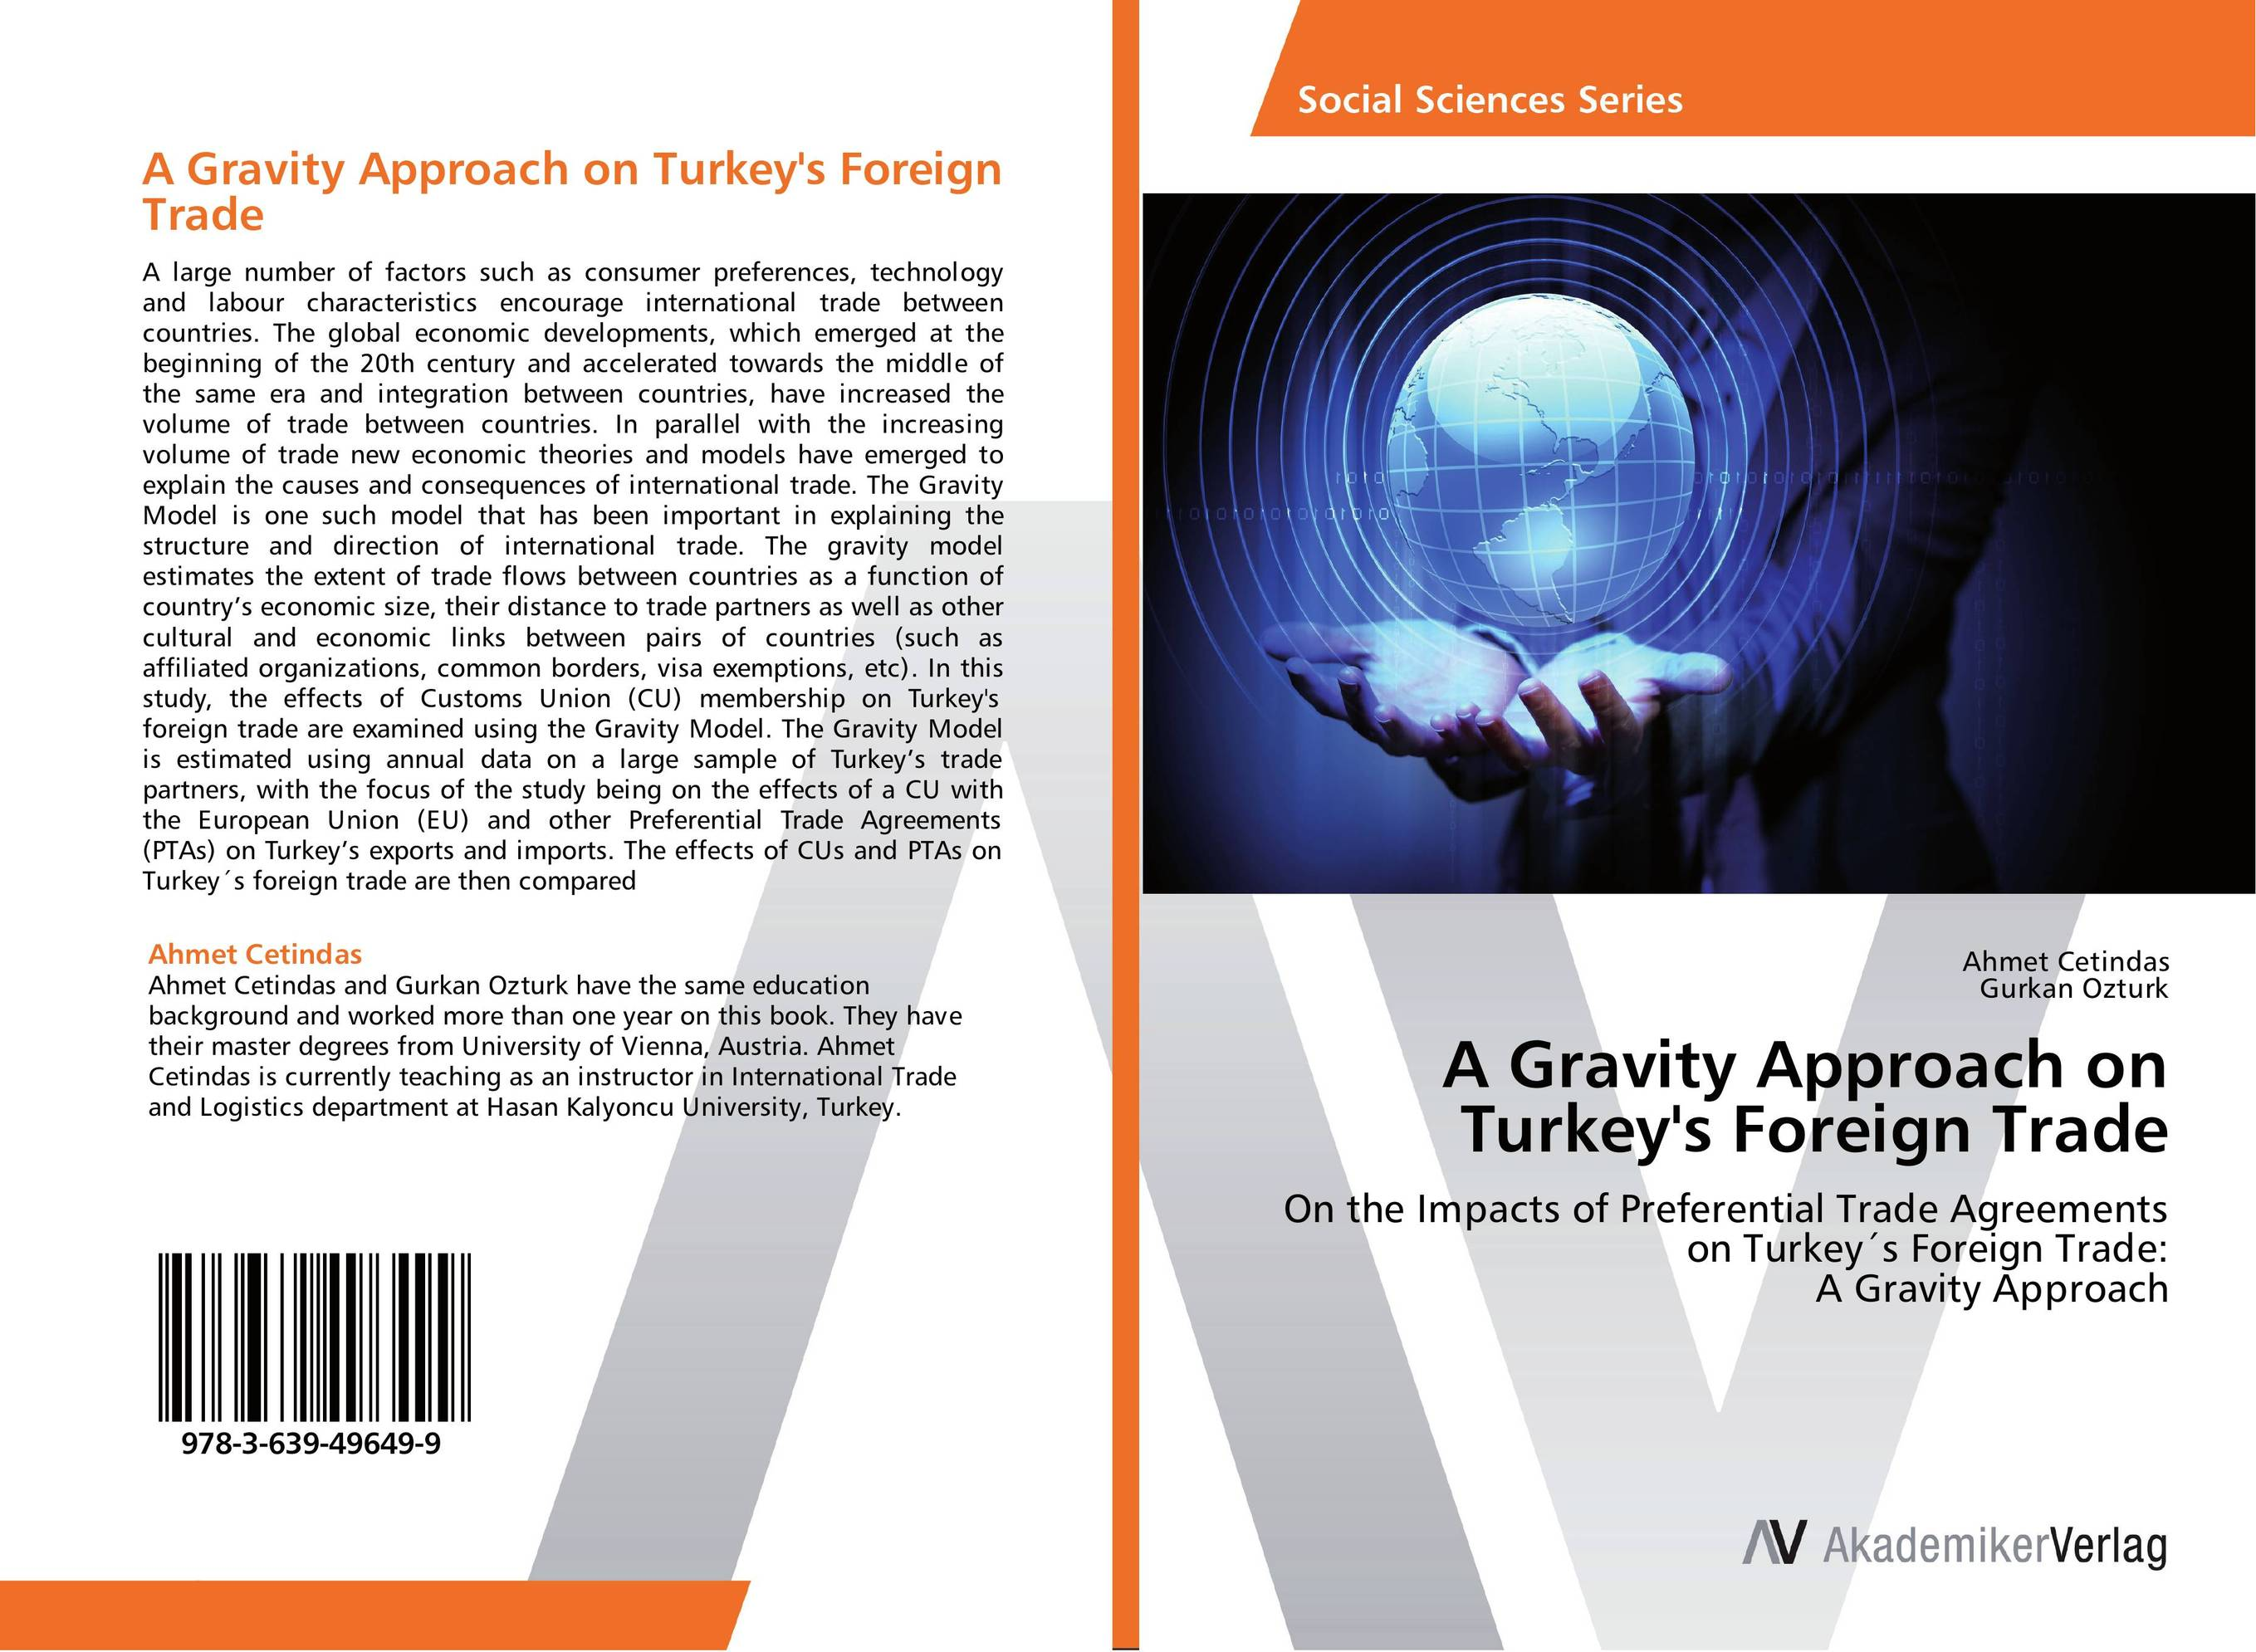 A Gravity Approach on Turkey's Foreign Trade